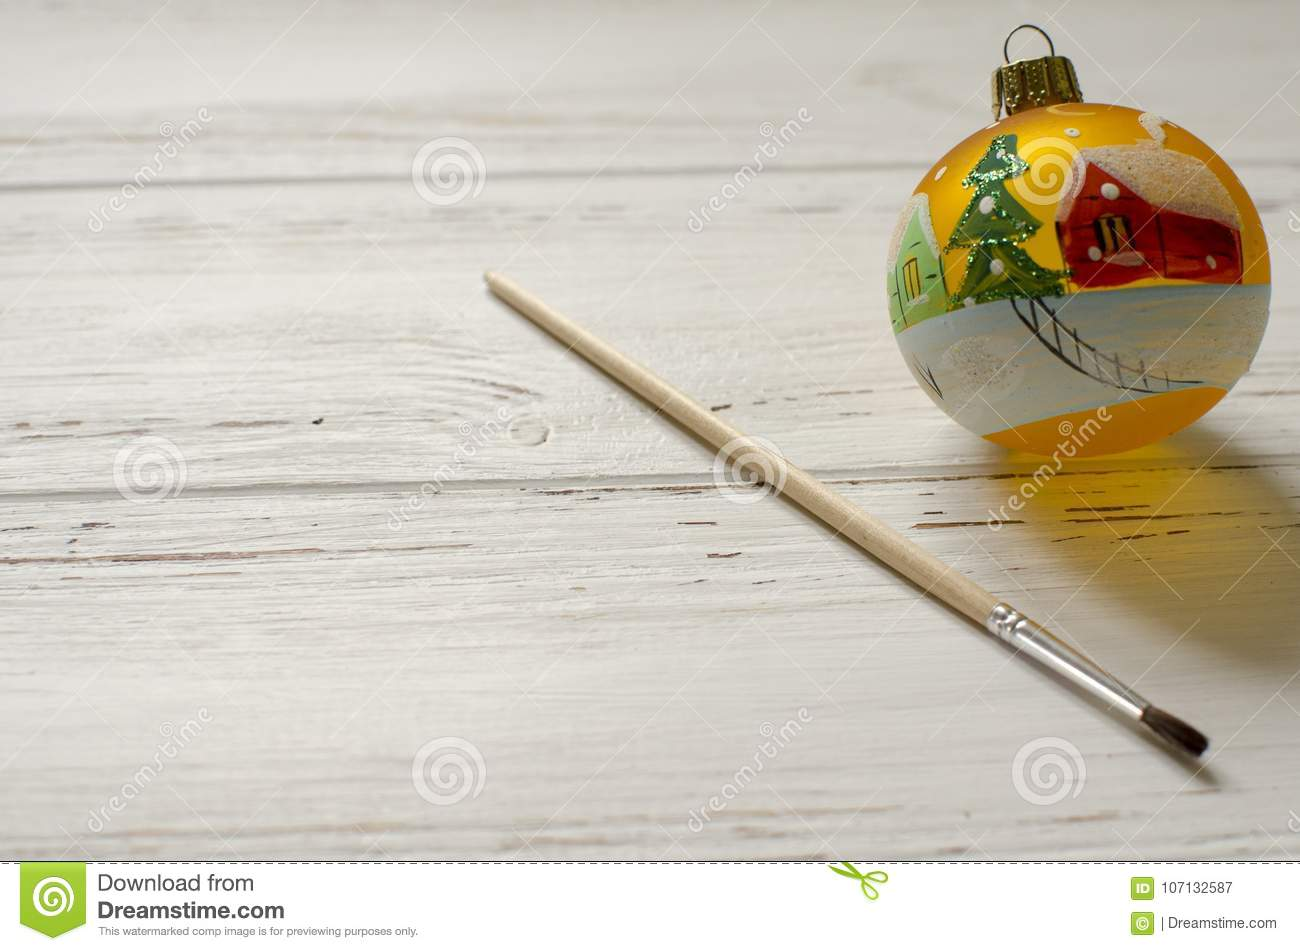 Hand-painted new year ball with brush on white wooden background